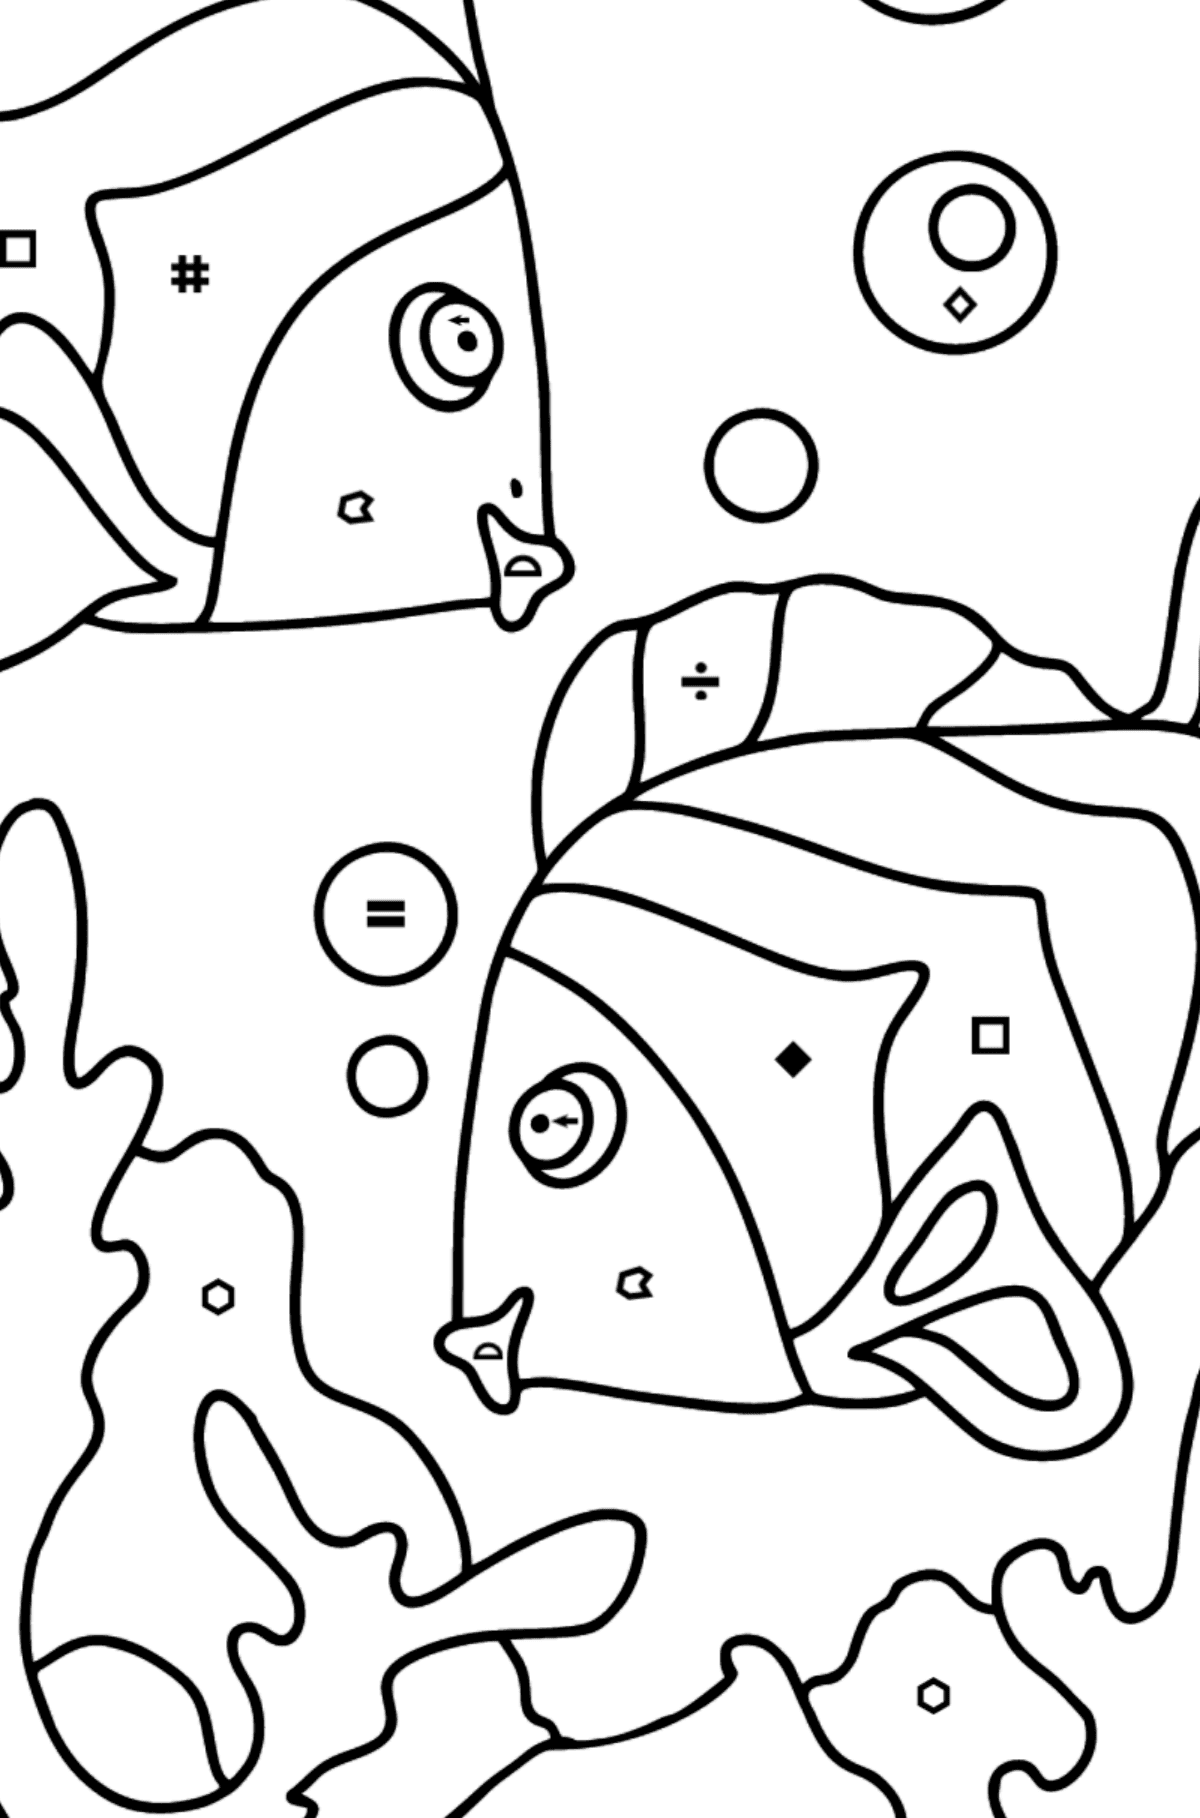 Coloring Page - Fish are Swimming Together - Coloring by Symbols and Geometric Shapes for Kids